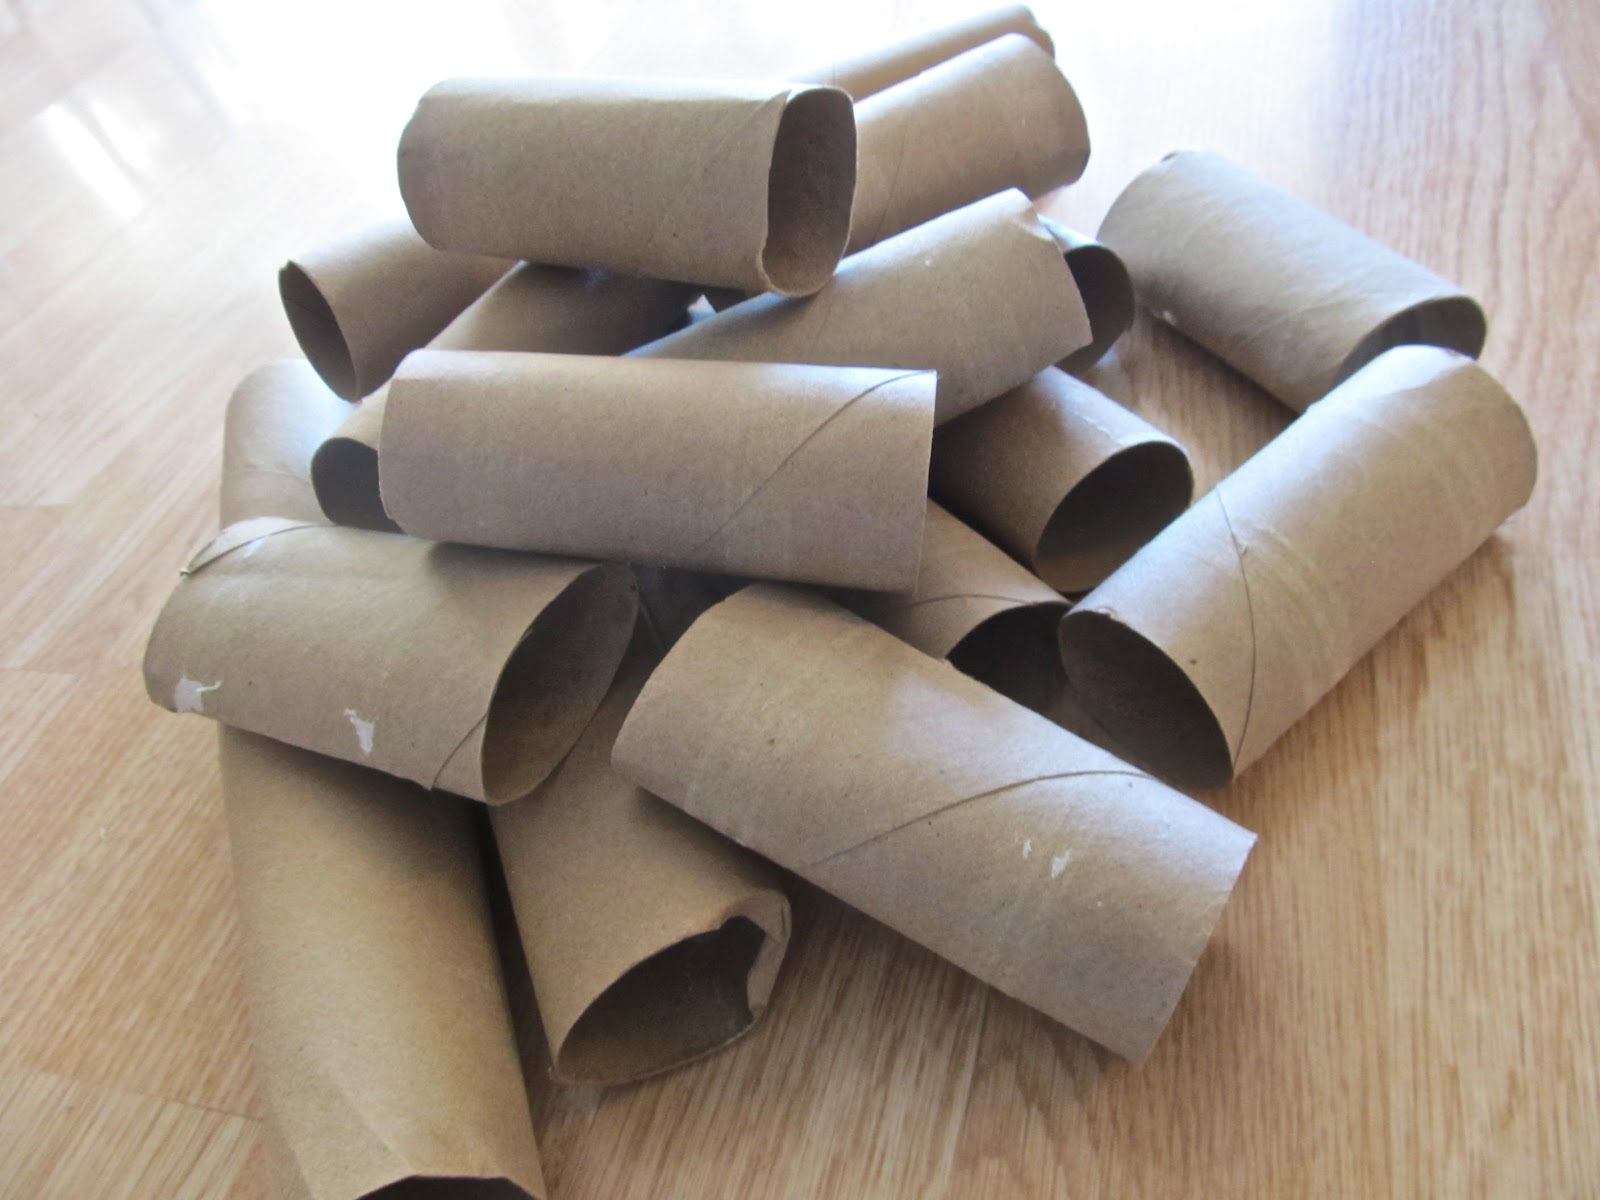 Keep Calm & DIY: Faux Wrought Iron Toilet Paper Roll Art - Cardboard Wall Panels Patterns